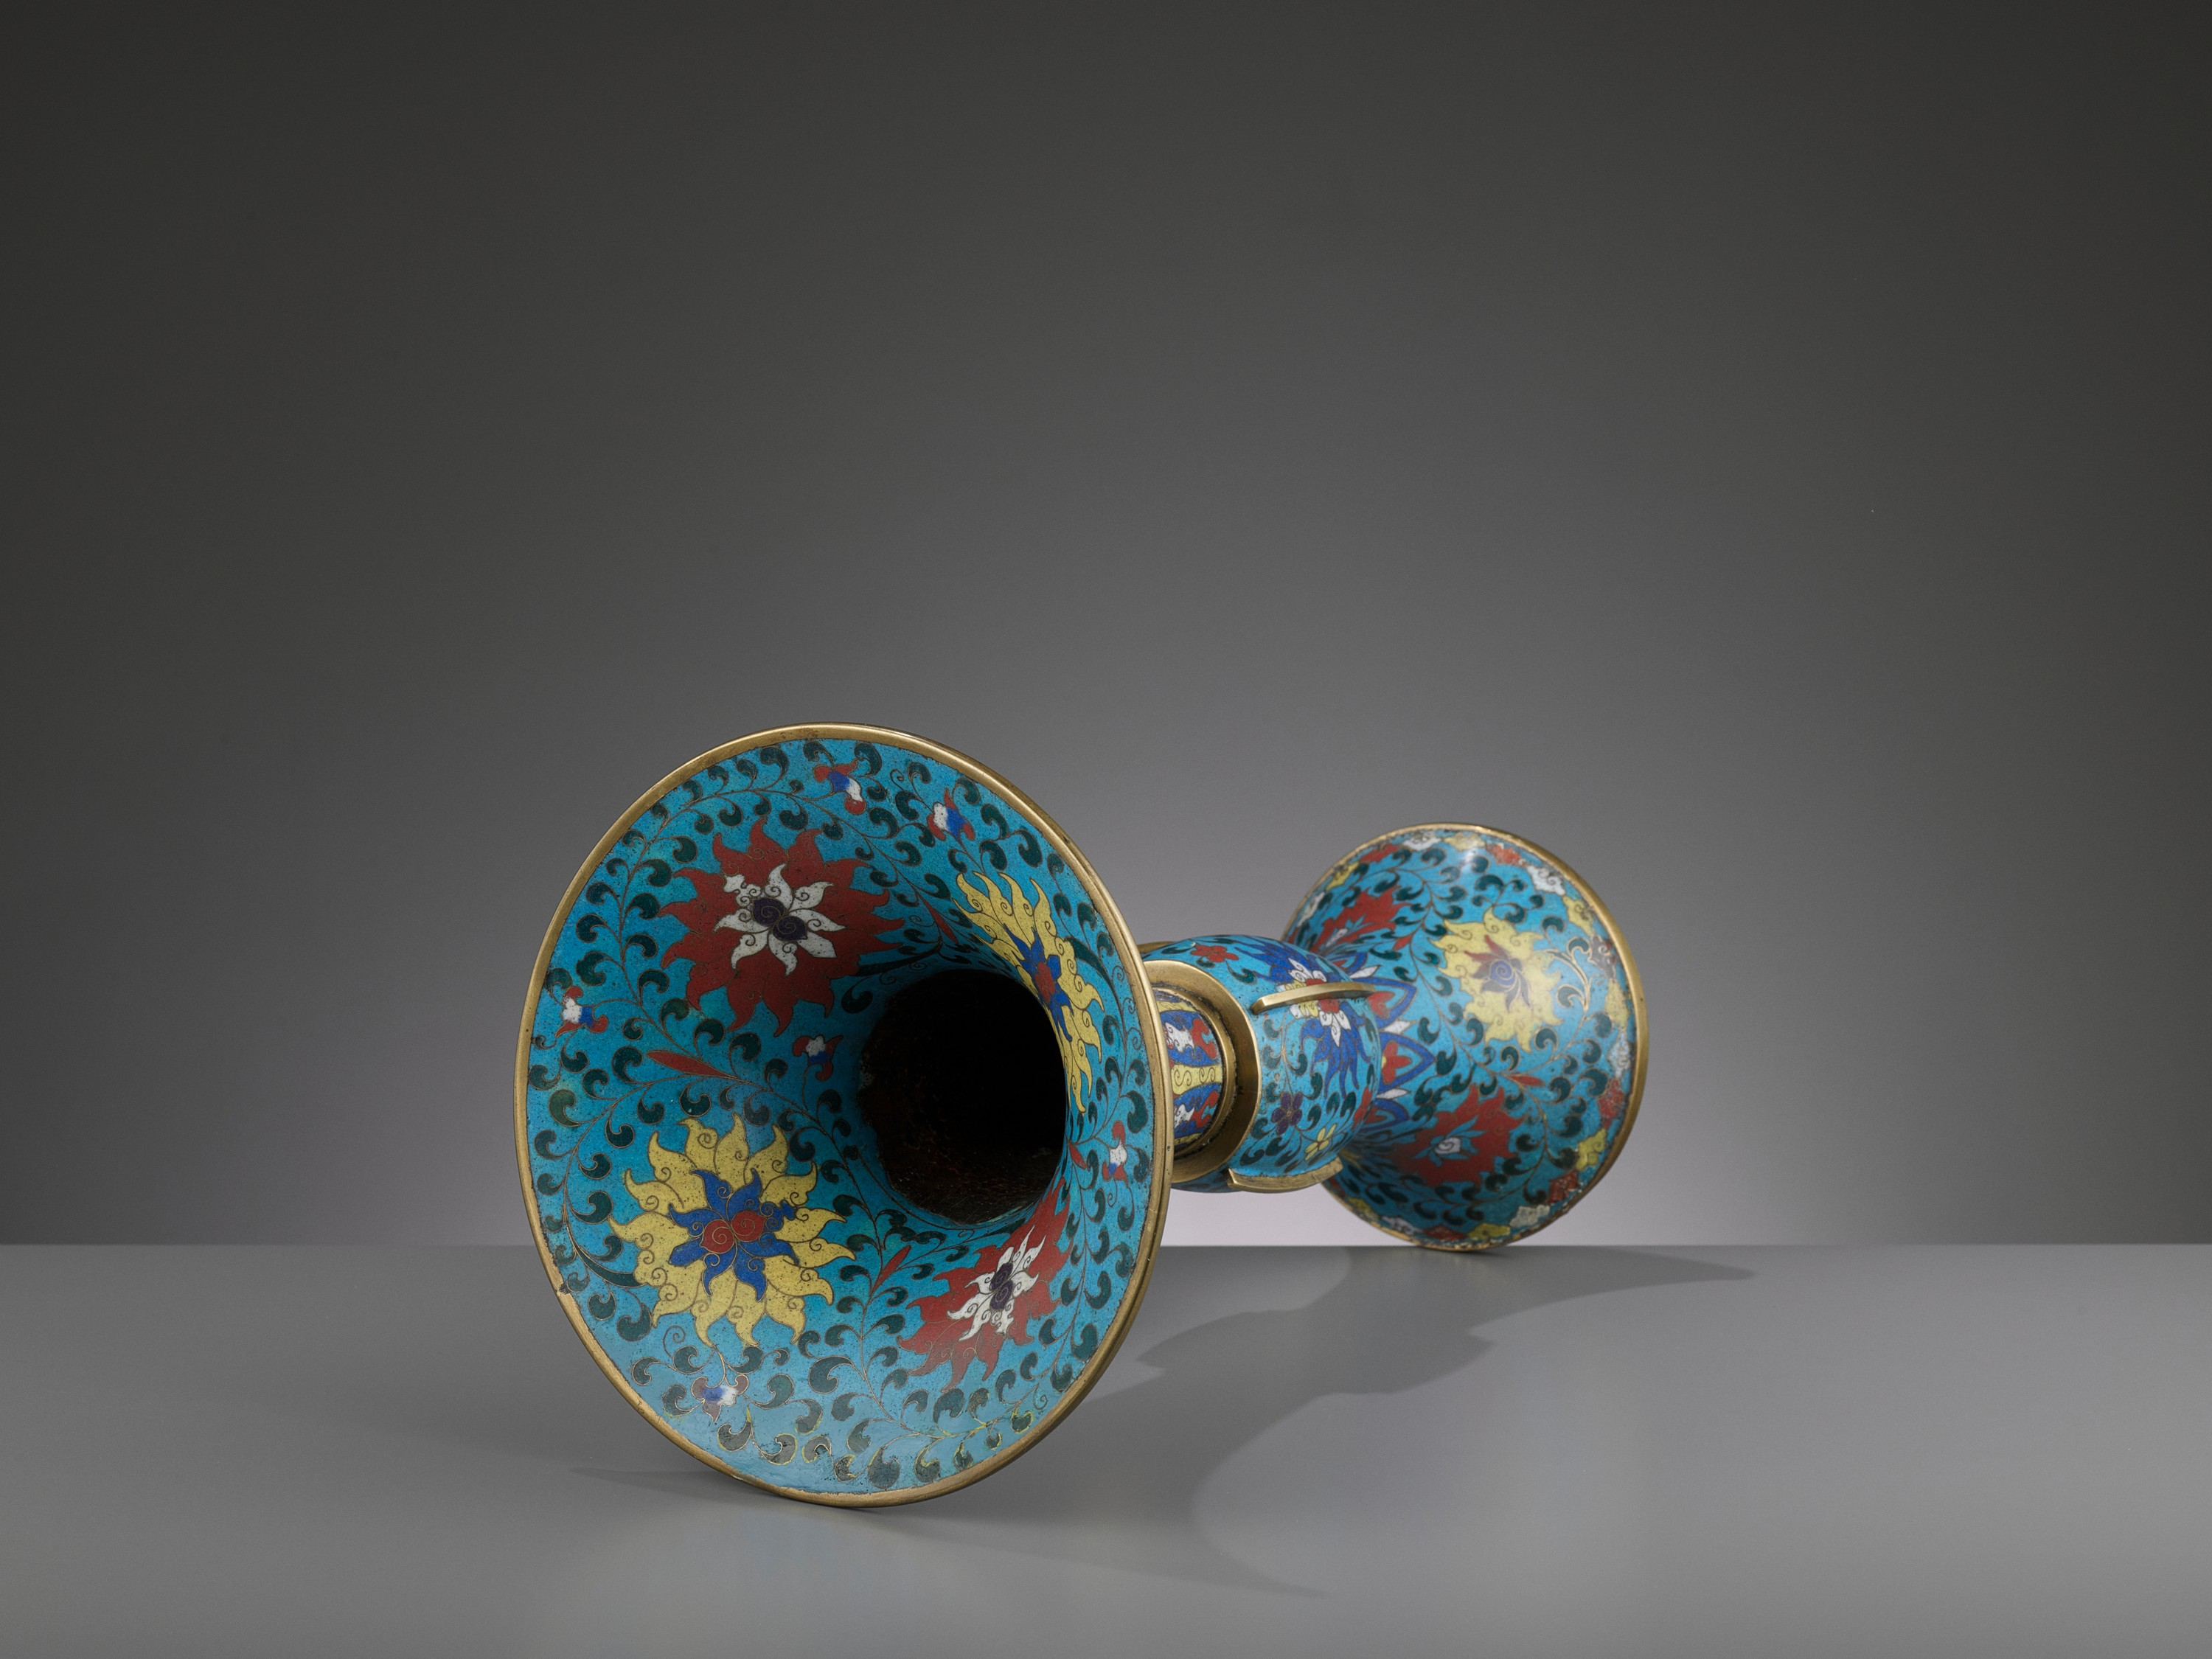 A LARGE CLOISONNE AND GILT-BRONZE GU, QING DYNASTY - Image 5 of 6